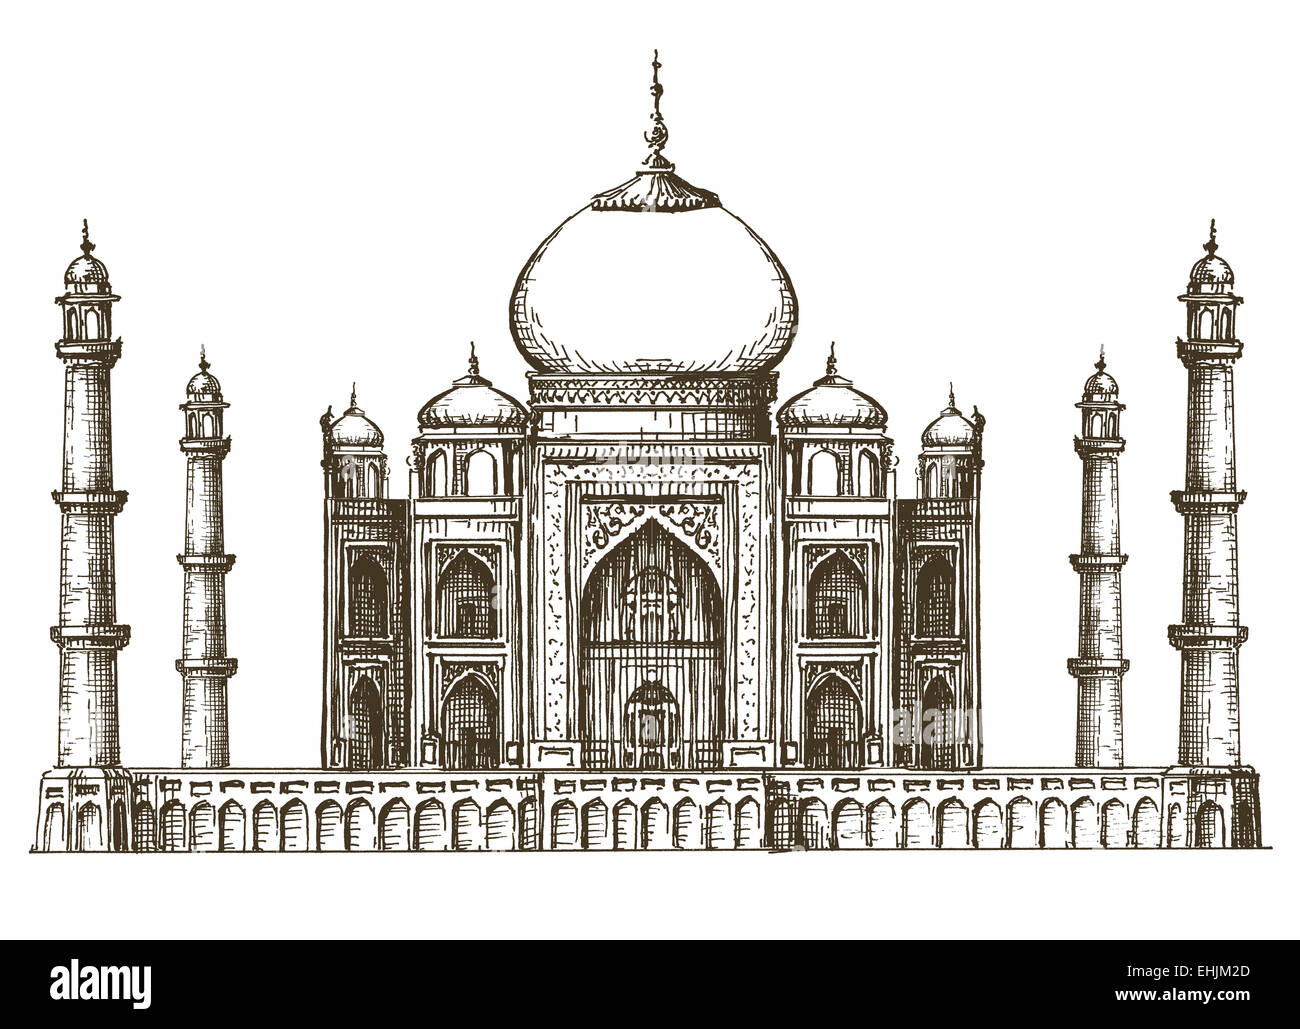 sketch of taj mahal in india worldwonders coloring pages. clipart ...